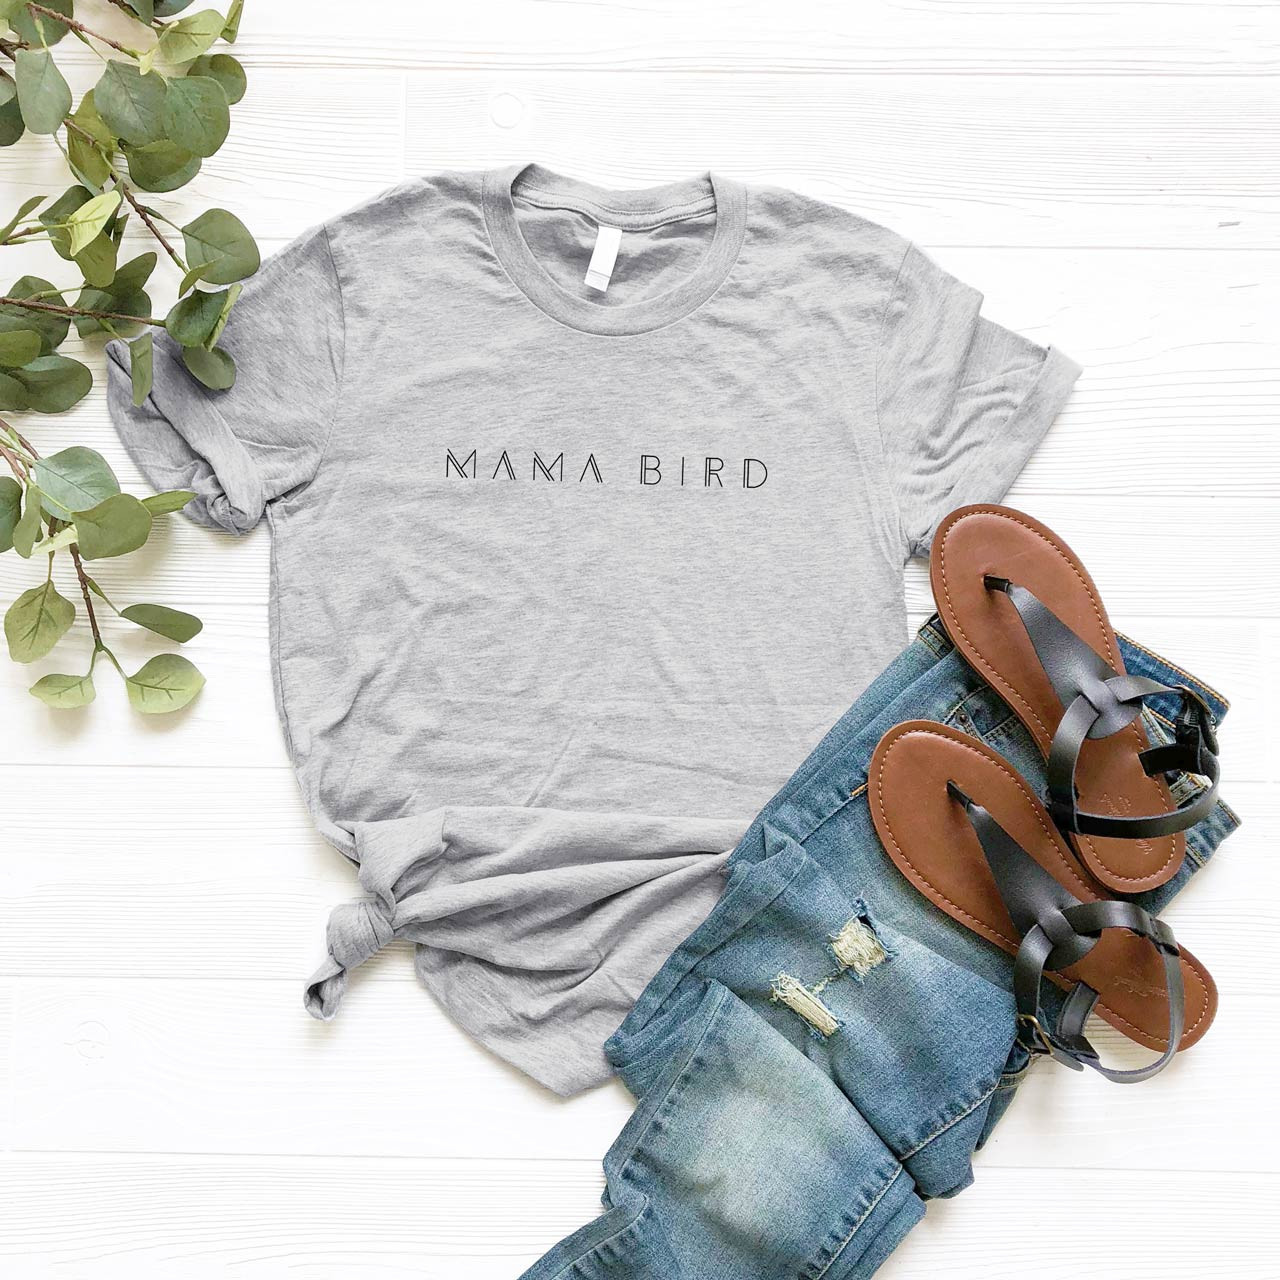 MAMA BIRD Cotton T-Shirt (Black on Gray) from The Printed Home